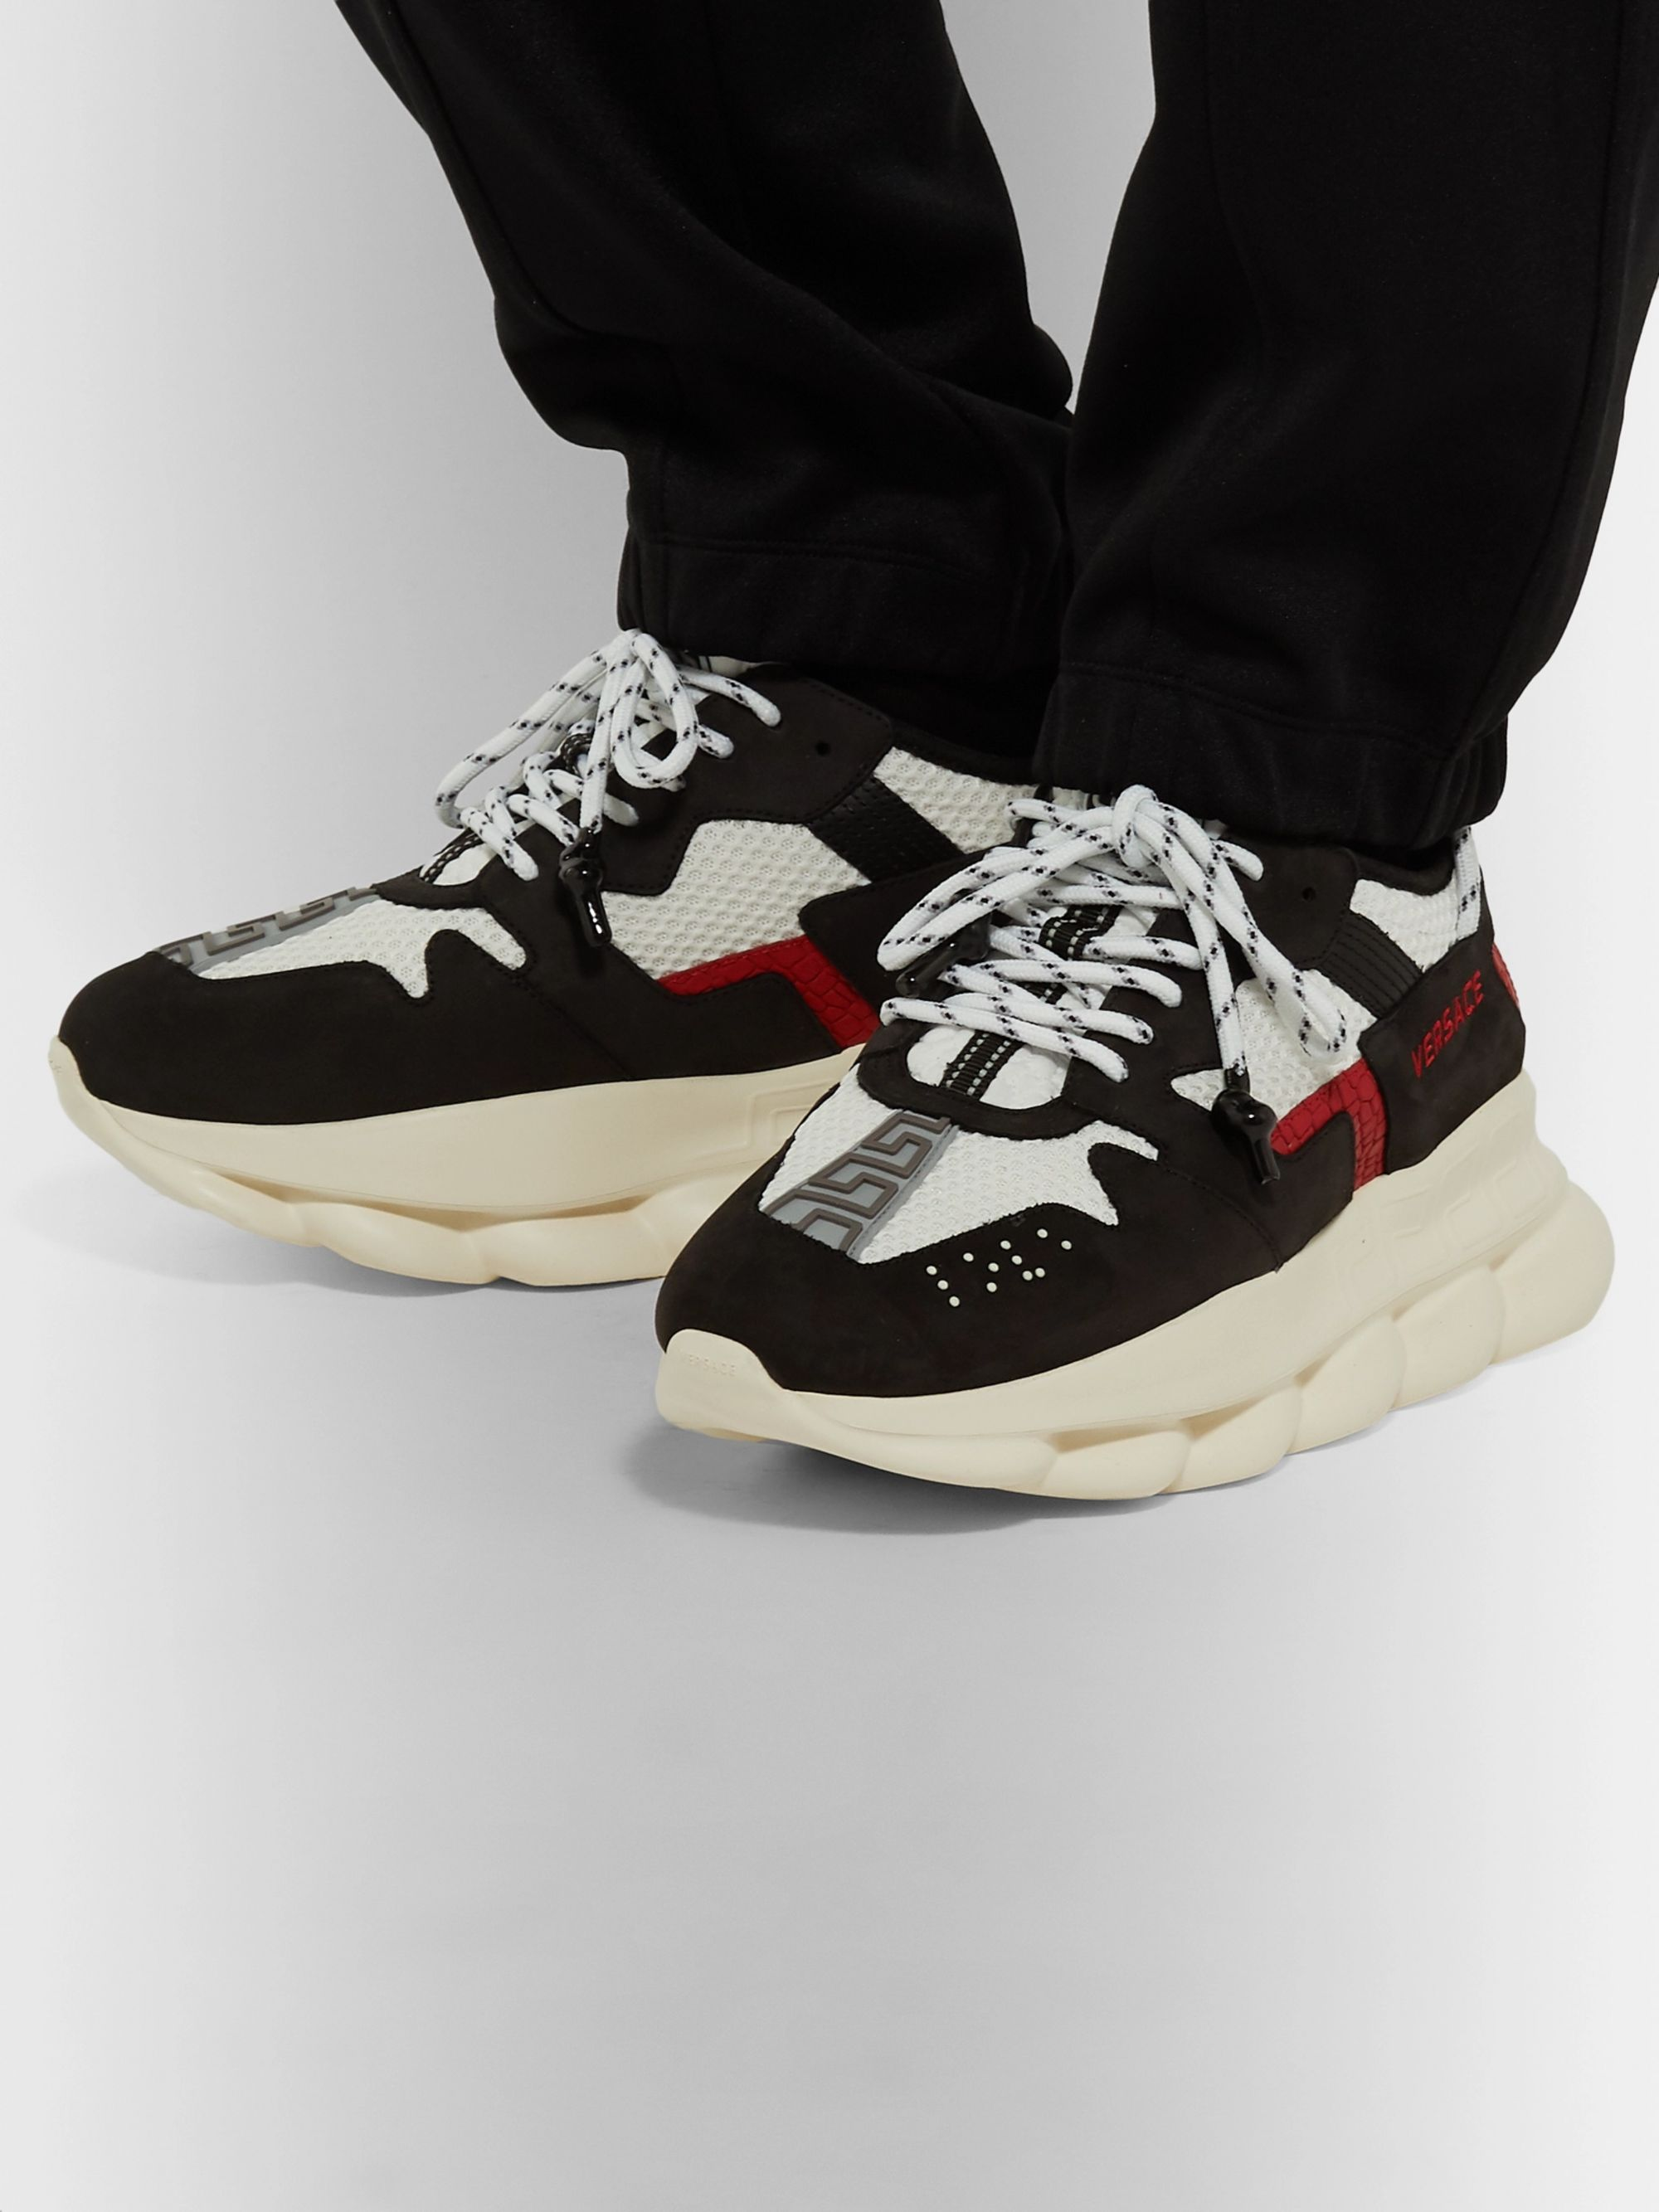 Chain Reaction 2.0 Panelled Suede and Mesh Sneakers